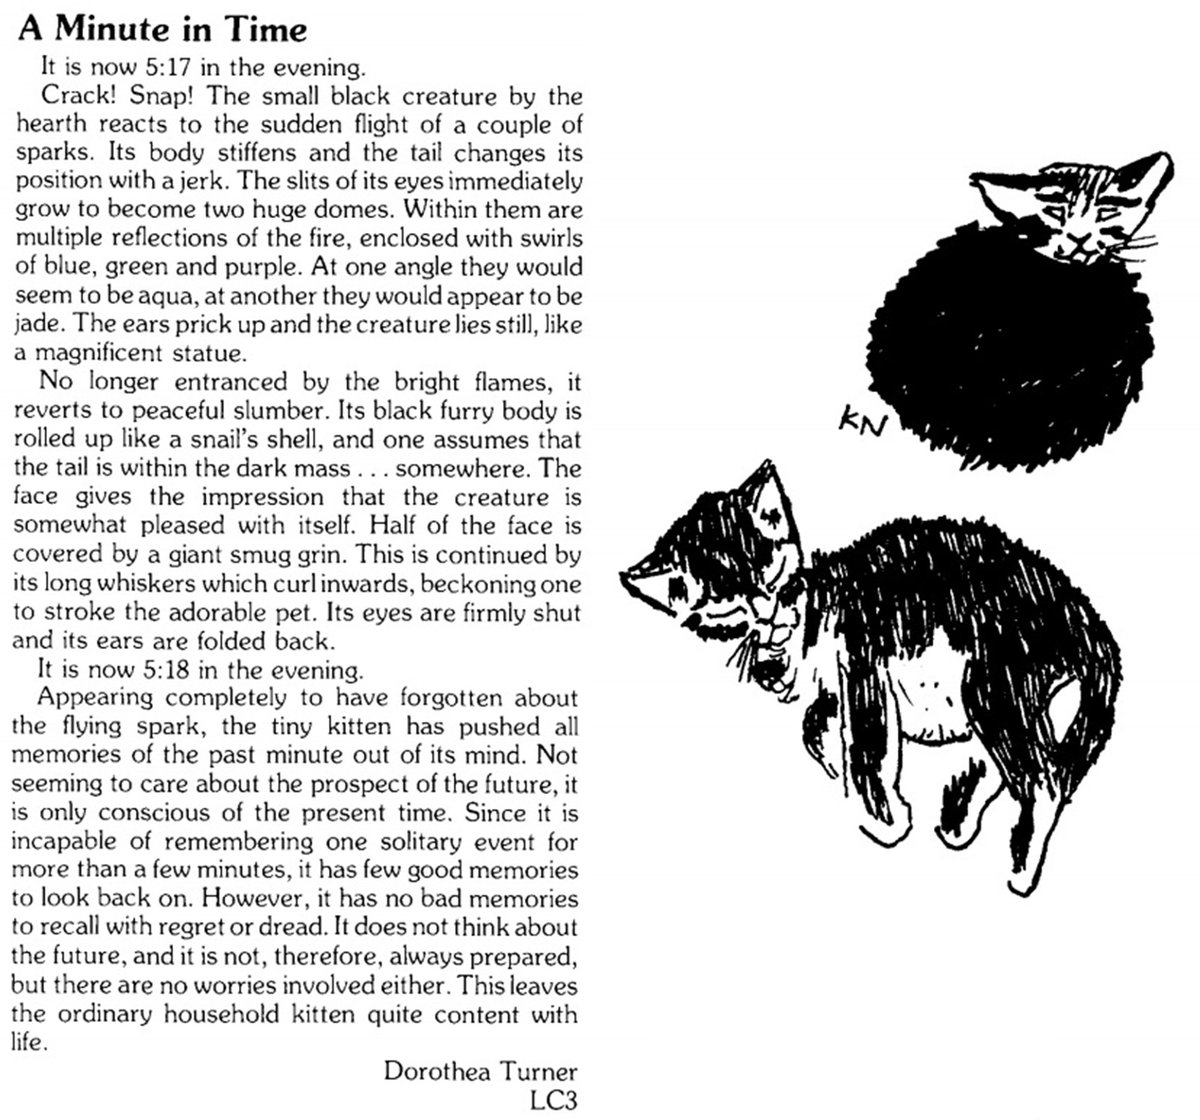 A Minute in Time: a #shortstory from the 1986 College Magazine. #MewseumMonday